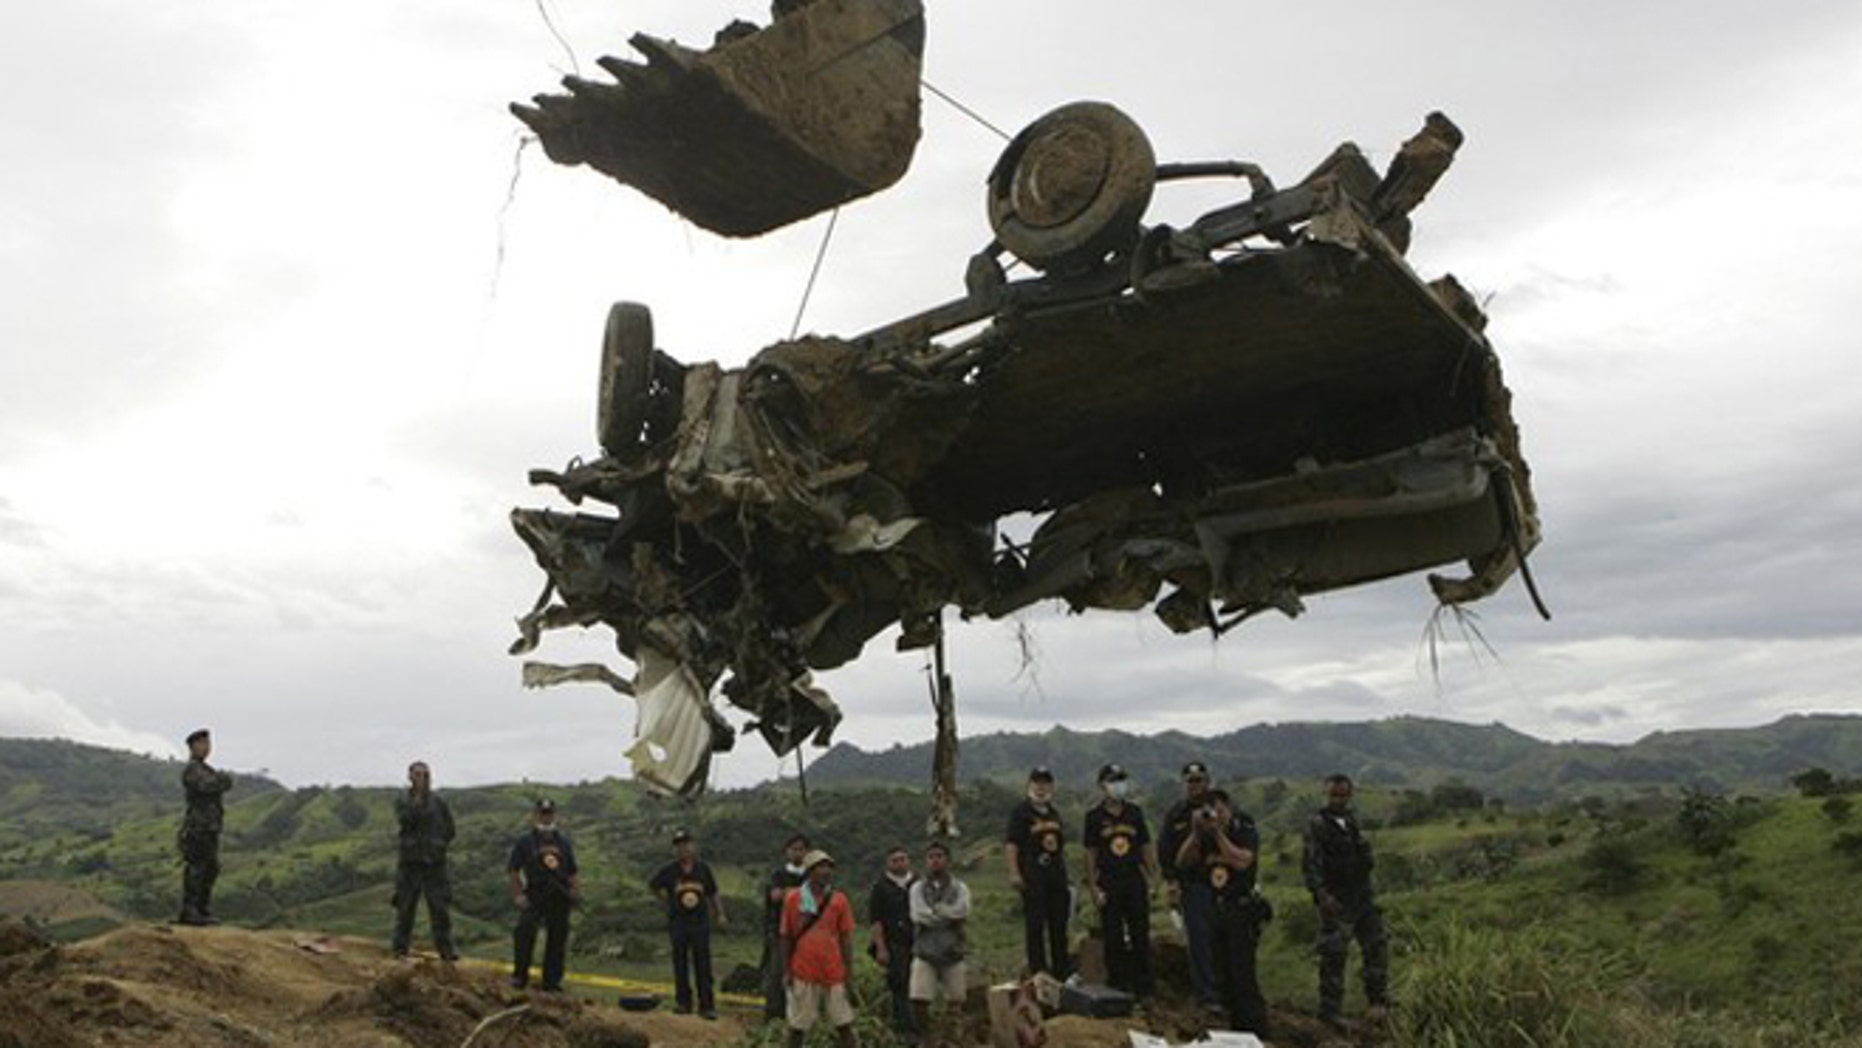 A backhoe lifts the wreckage of a local television network's vehicle that was unearthed from a shallow grave at the site of a massacre of a political clan that included several journalists in the outskirts of Ampatuan, Maguindanao in southern Philippines in this November 25, 2009 file photo. The 2009 massacre of 57 people, including 31 journalists, in the southern province of Maguindanao was horrific even by the standards of the Philippines, whose restive south is riven by political and insurgent violence.